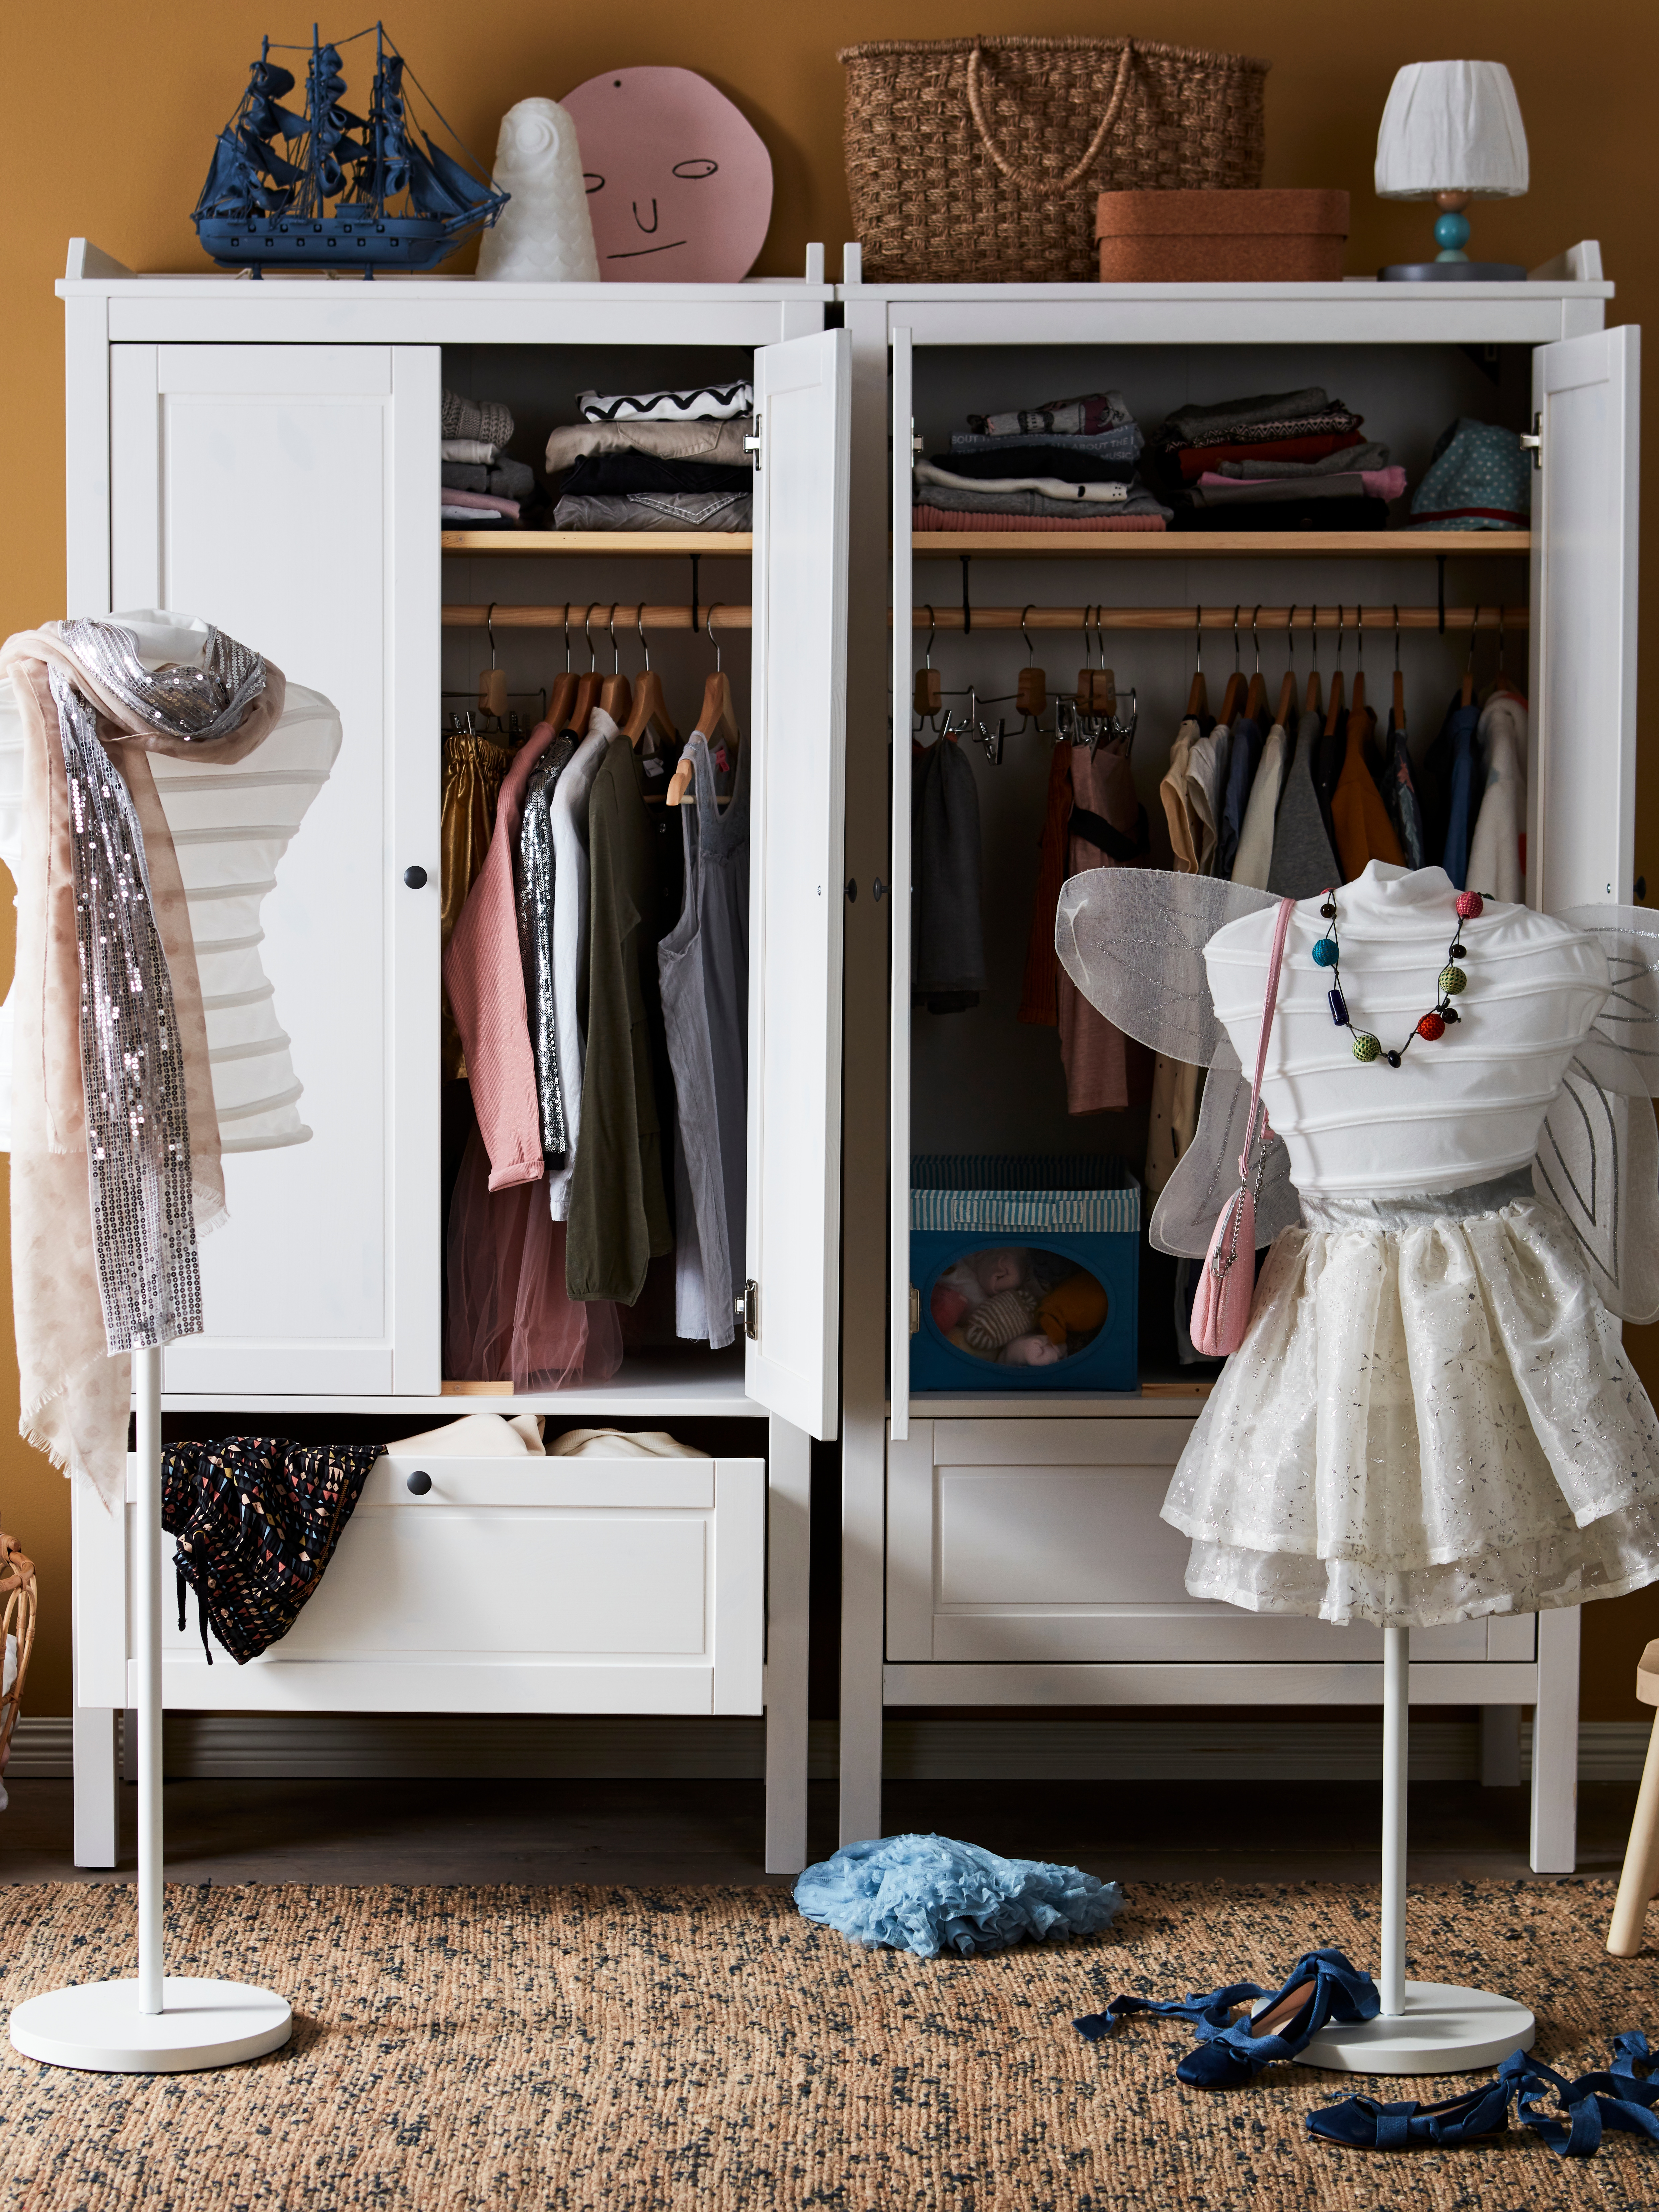 Two partly dressed, torso-shaped clothes stands are in front of two, white SUNDVIK wardrobes filled with clothes.